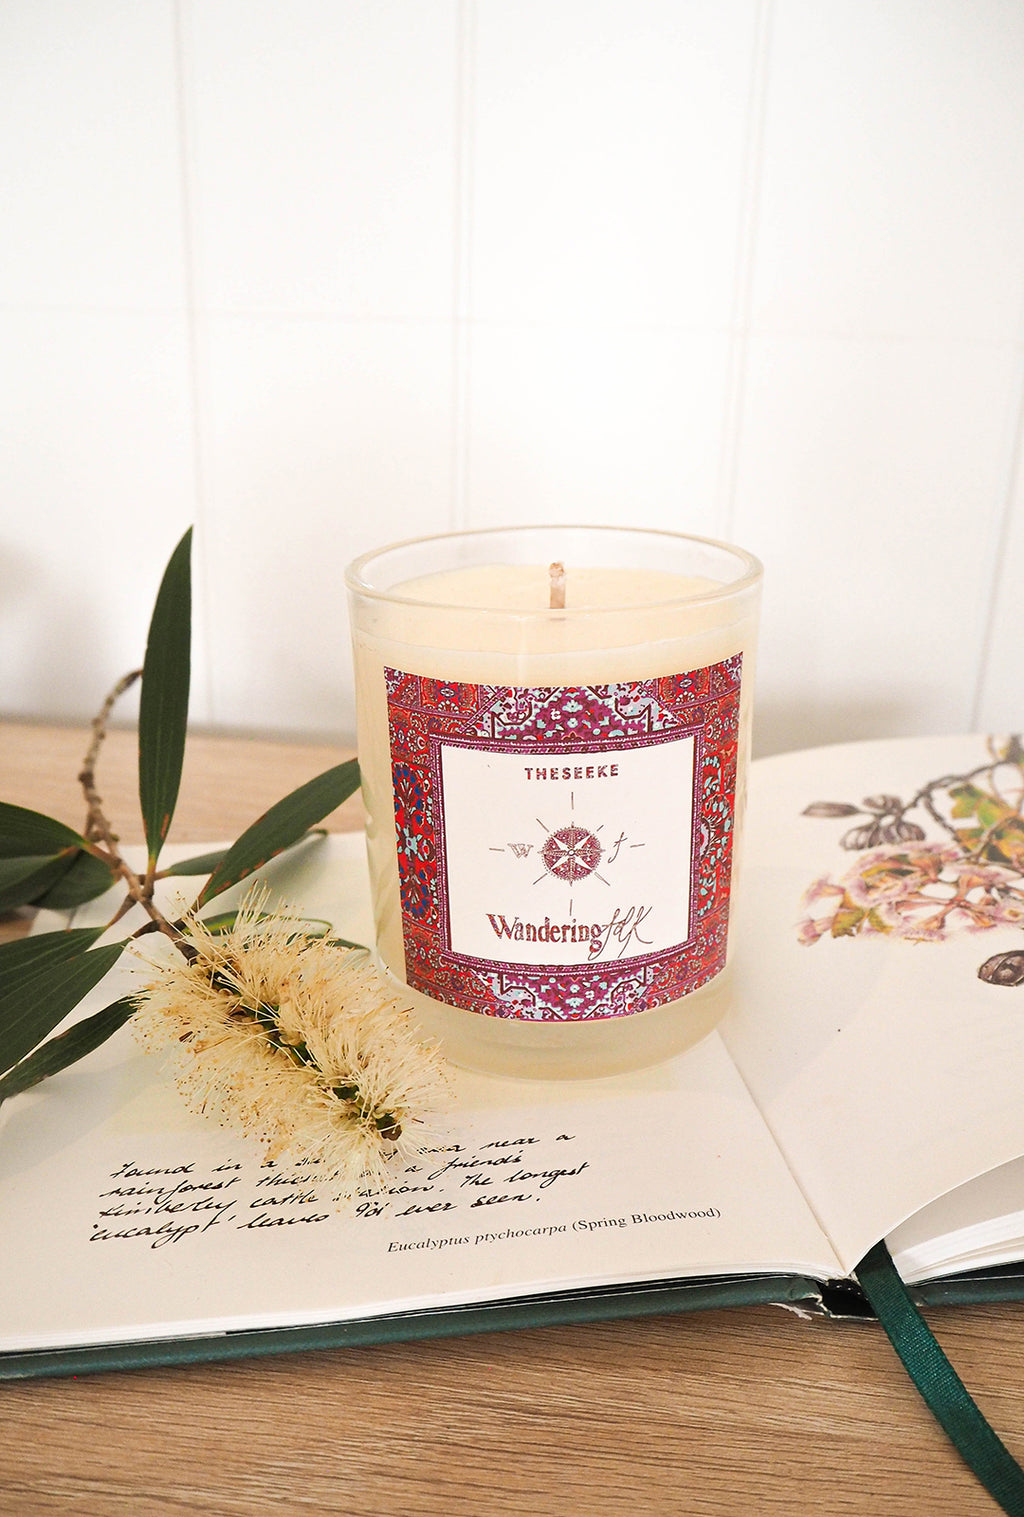 Theseeke x Wandering Folk Soy Wax Candle